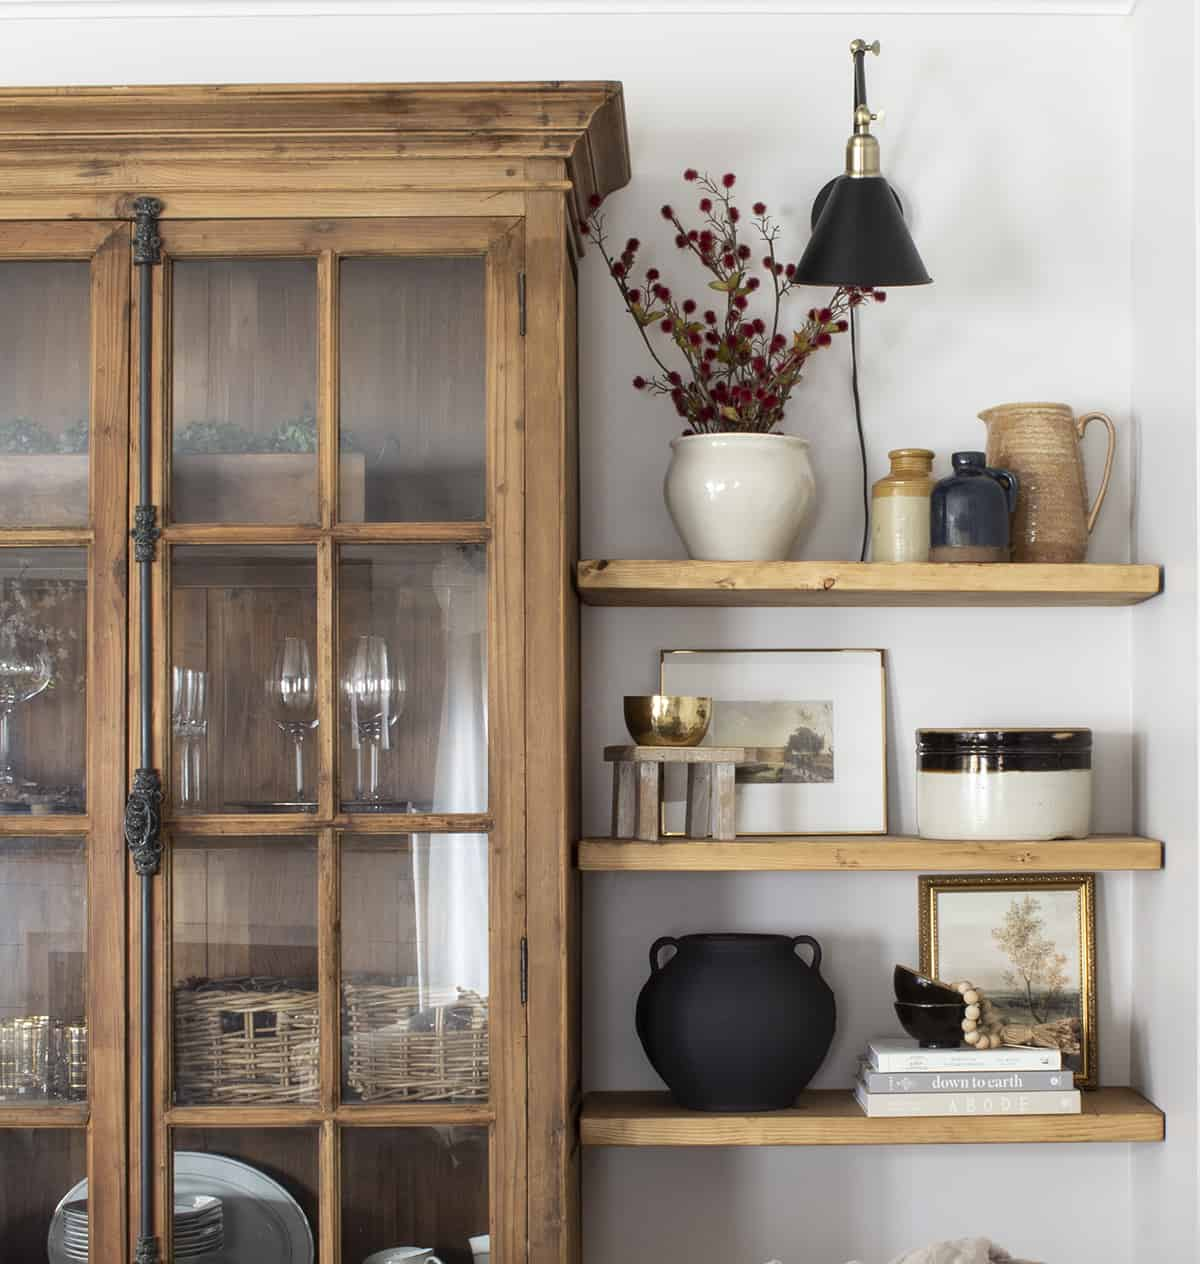 Pottery books and gold frames on floating shelves